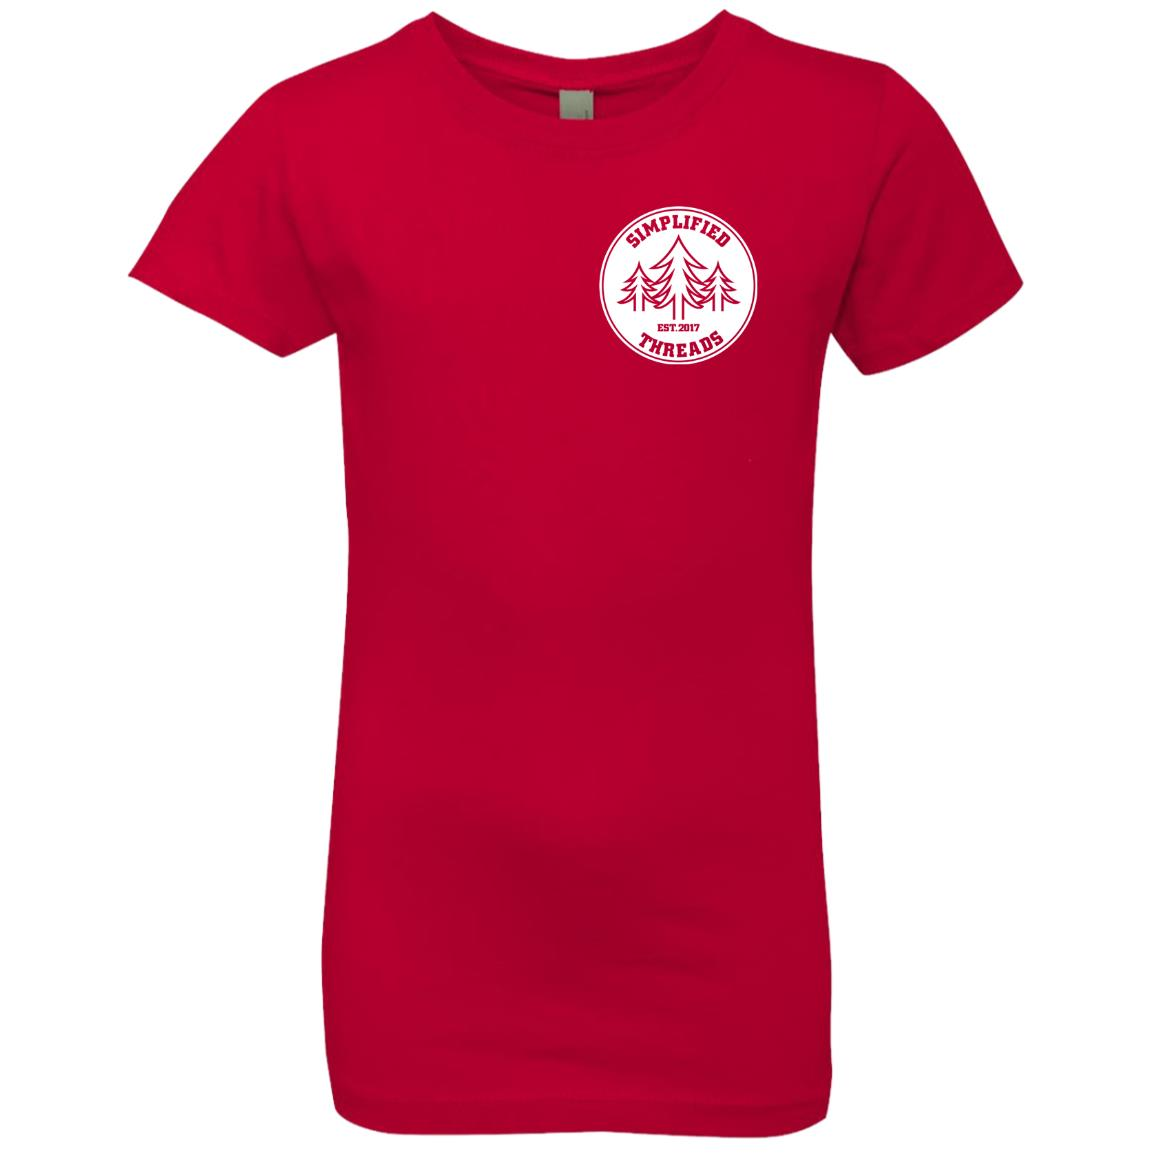 Kids Small Dig Your Roots Logo Tee | Girls'